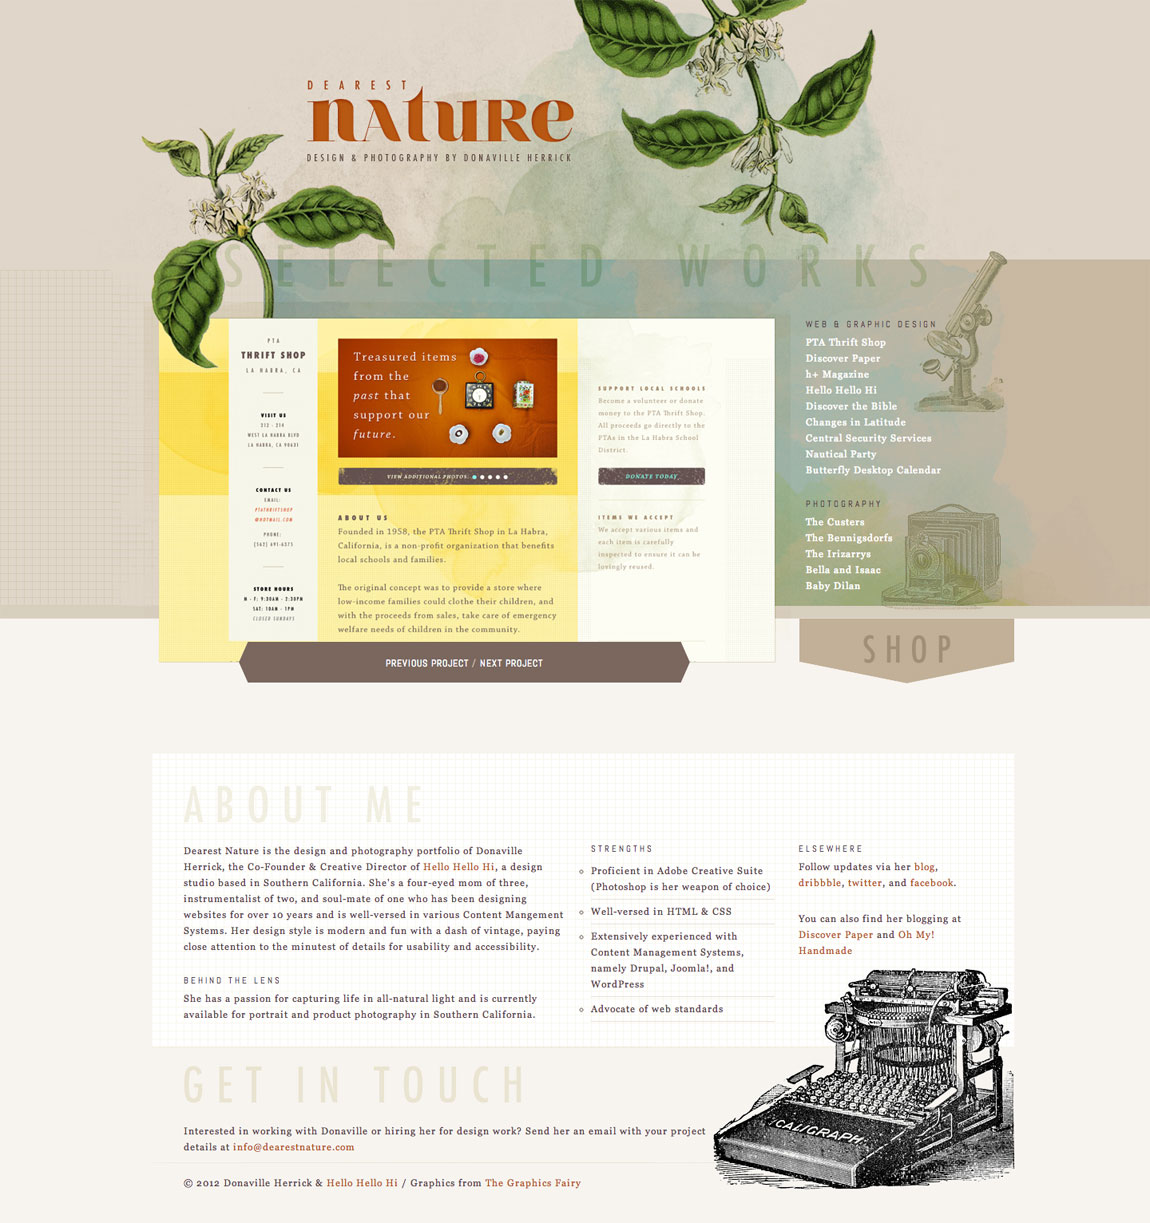 Dearest Nature Website Screenshot